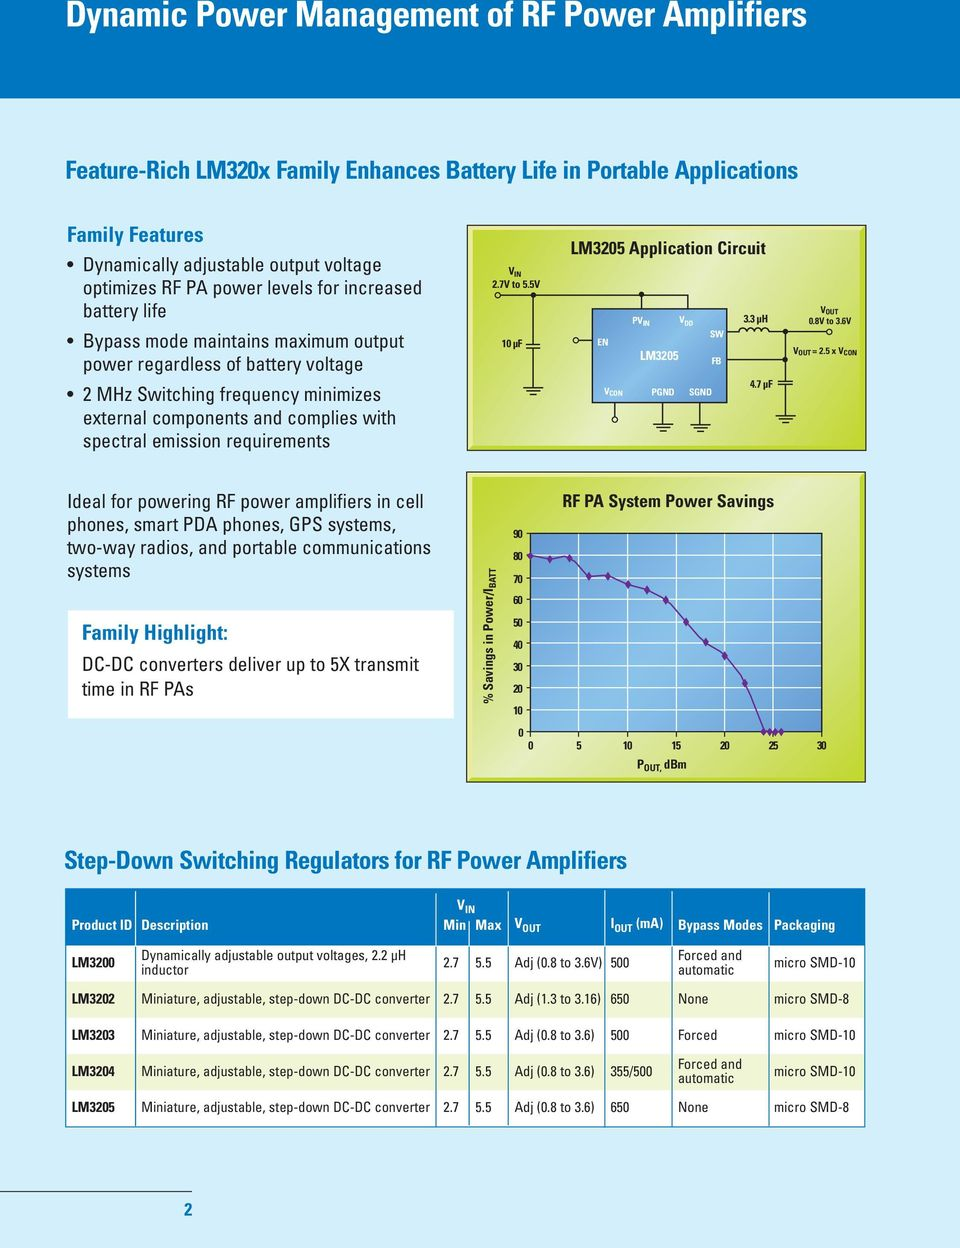 Lm3203lm3204lm3205 Optimizing Rf Power Amplifier System Efficiency National Lm386 Audio Datasheet For Battery Operation Requirements V In 27v To 55v 10 F Lm3205 Application Circuit Pv